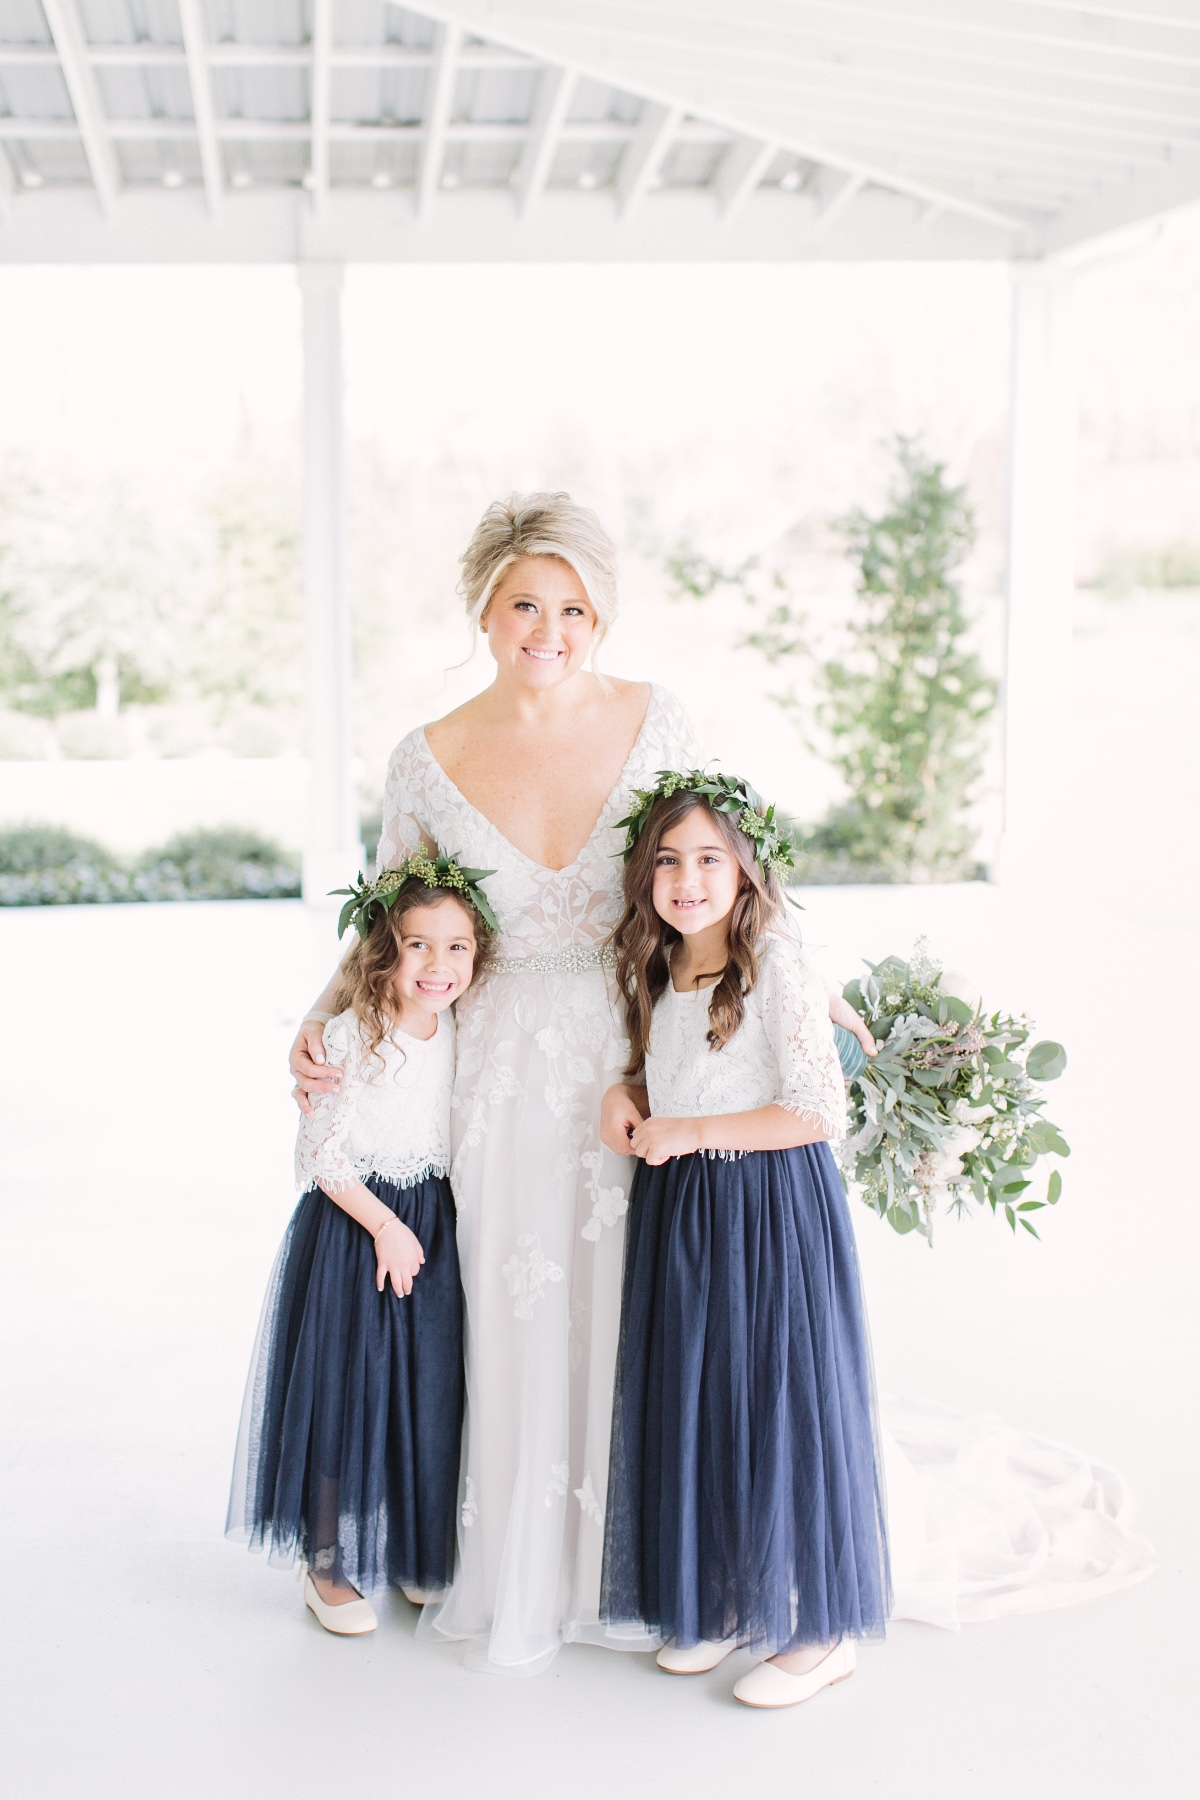 white and blue flower girl outfit idea with greenery floral crowns